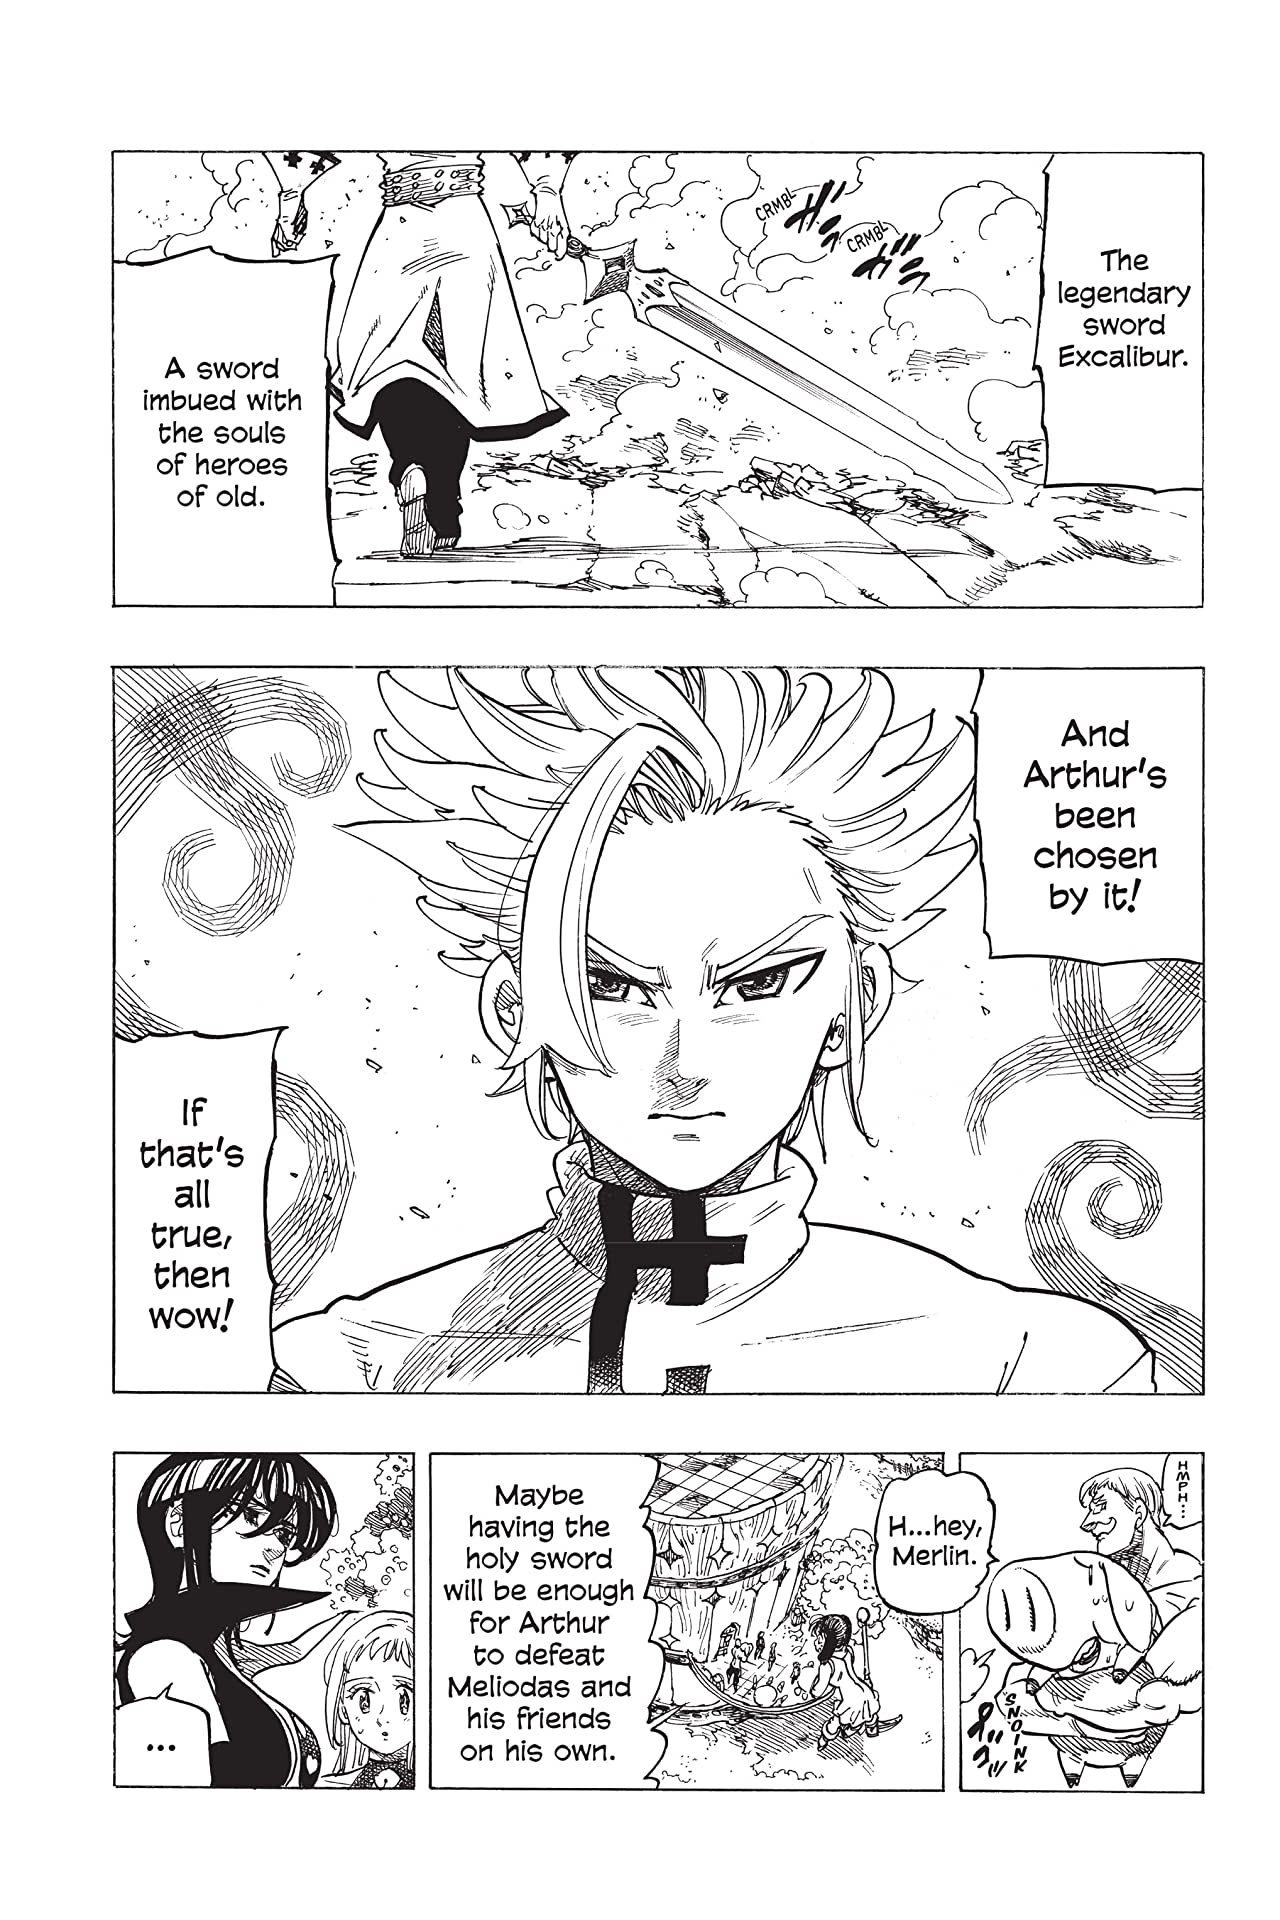 The Seven Deadly Sins #256